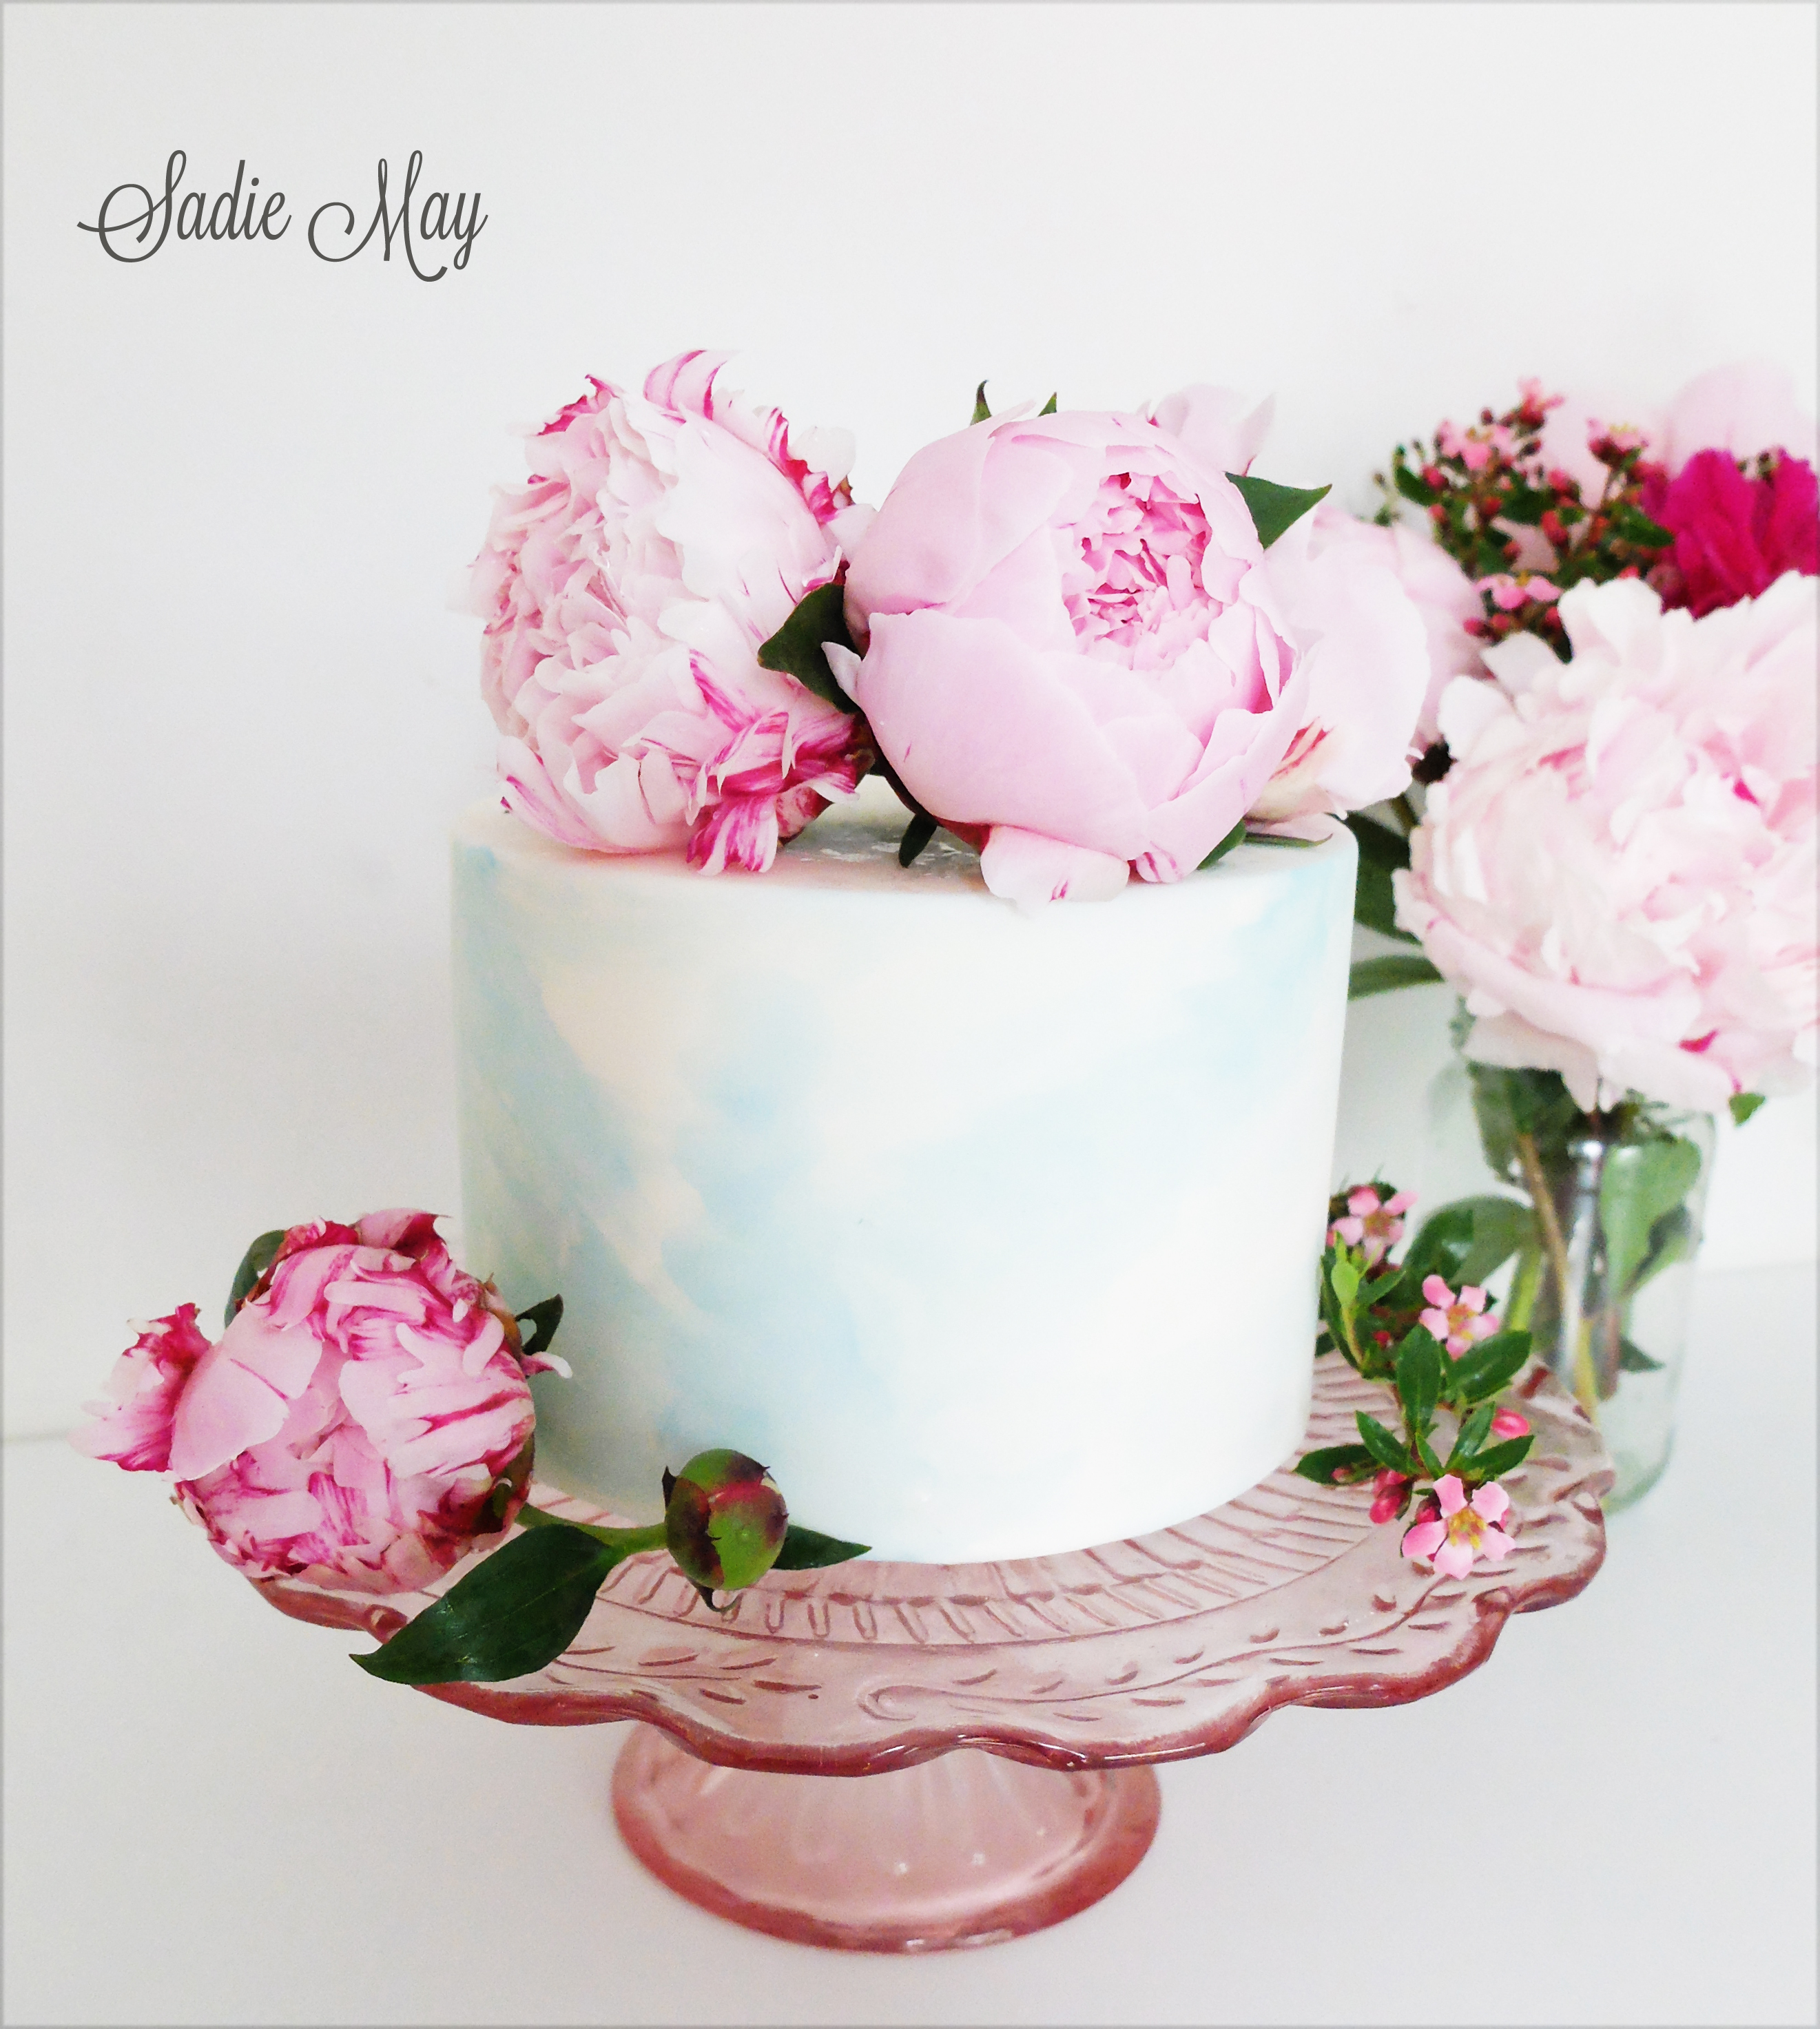 Mini baby blue marbled cake with pink sugar roses